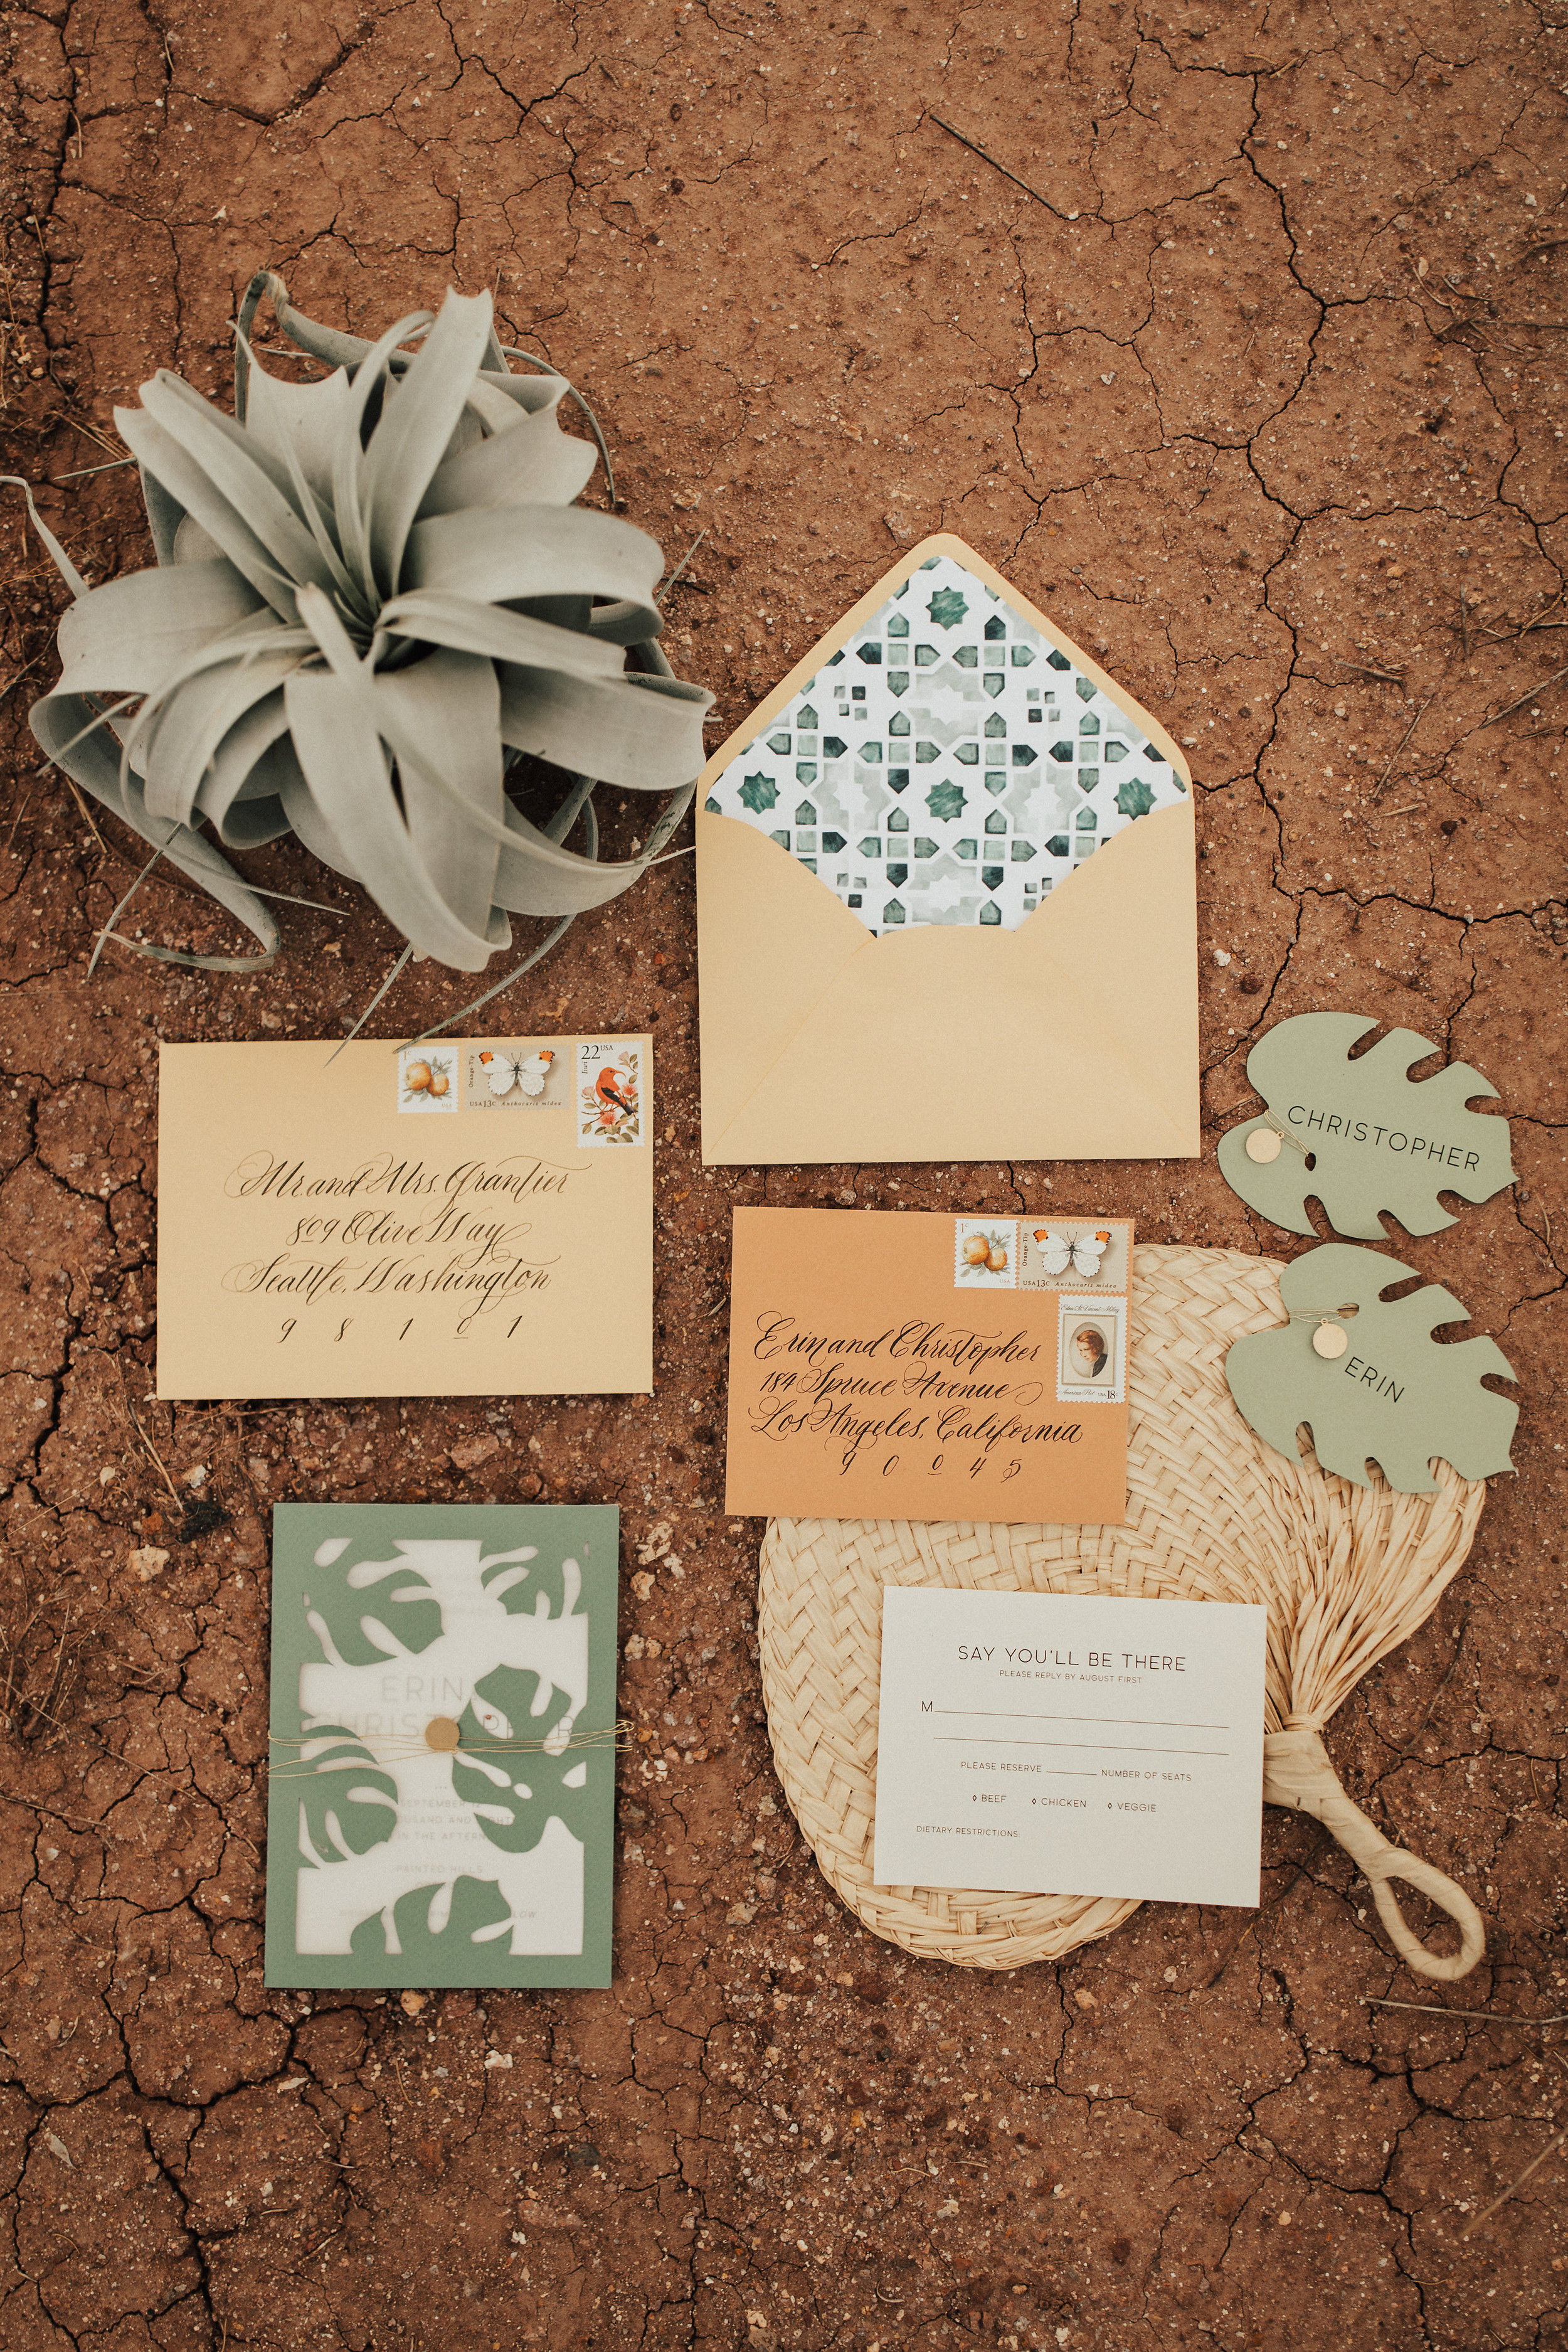 Stationery by Ink & Sable